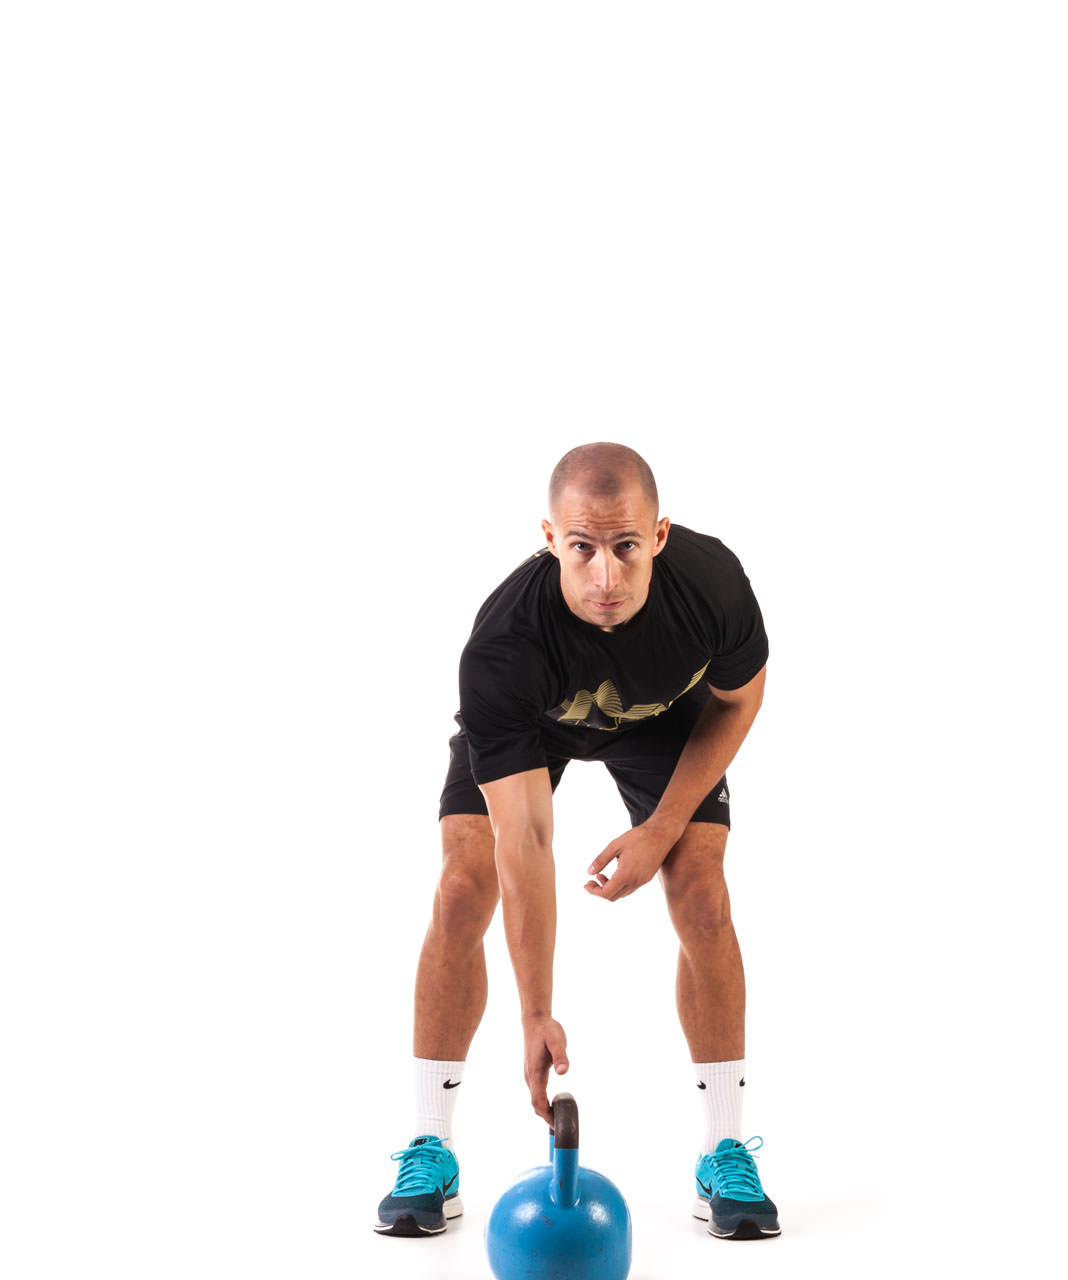 Alternating Kettlebell Swing frame #1